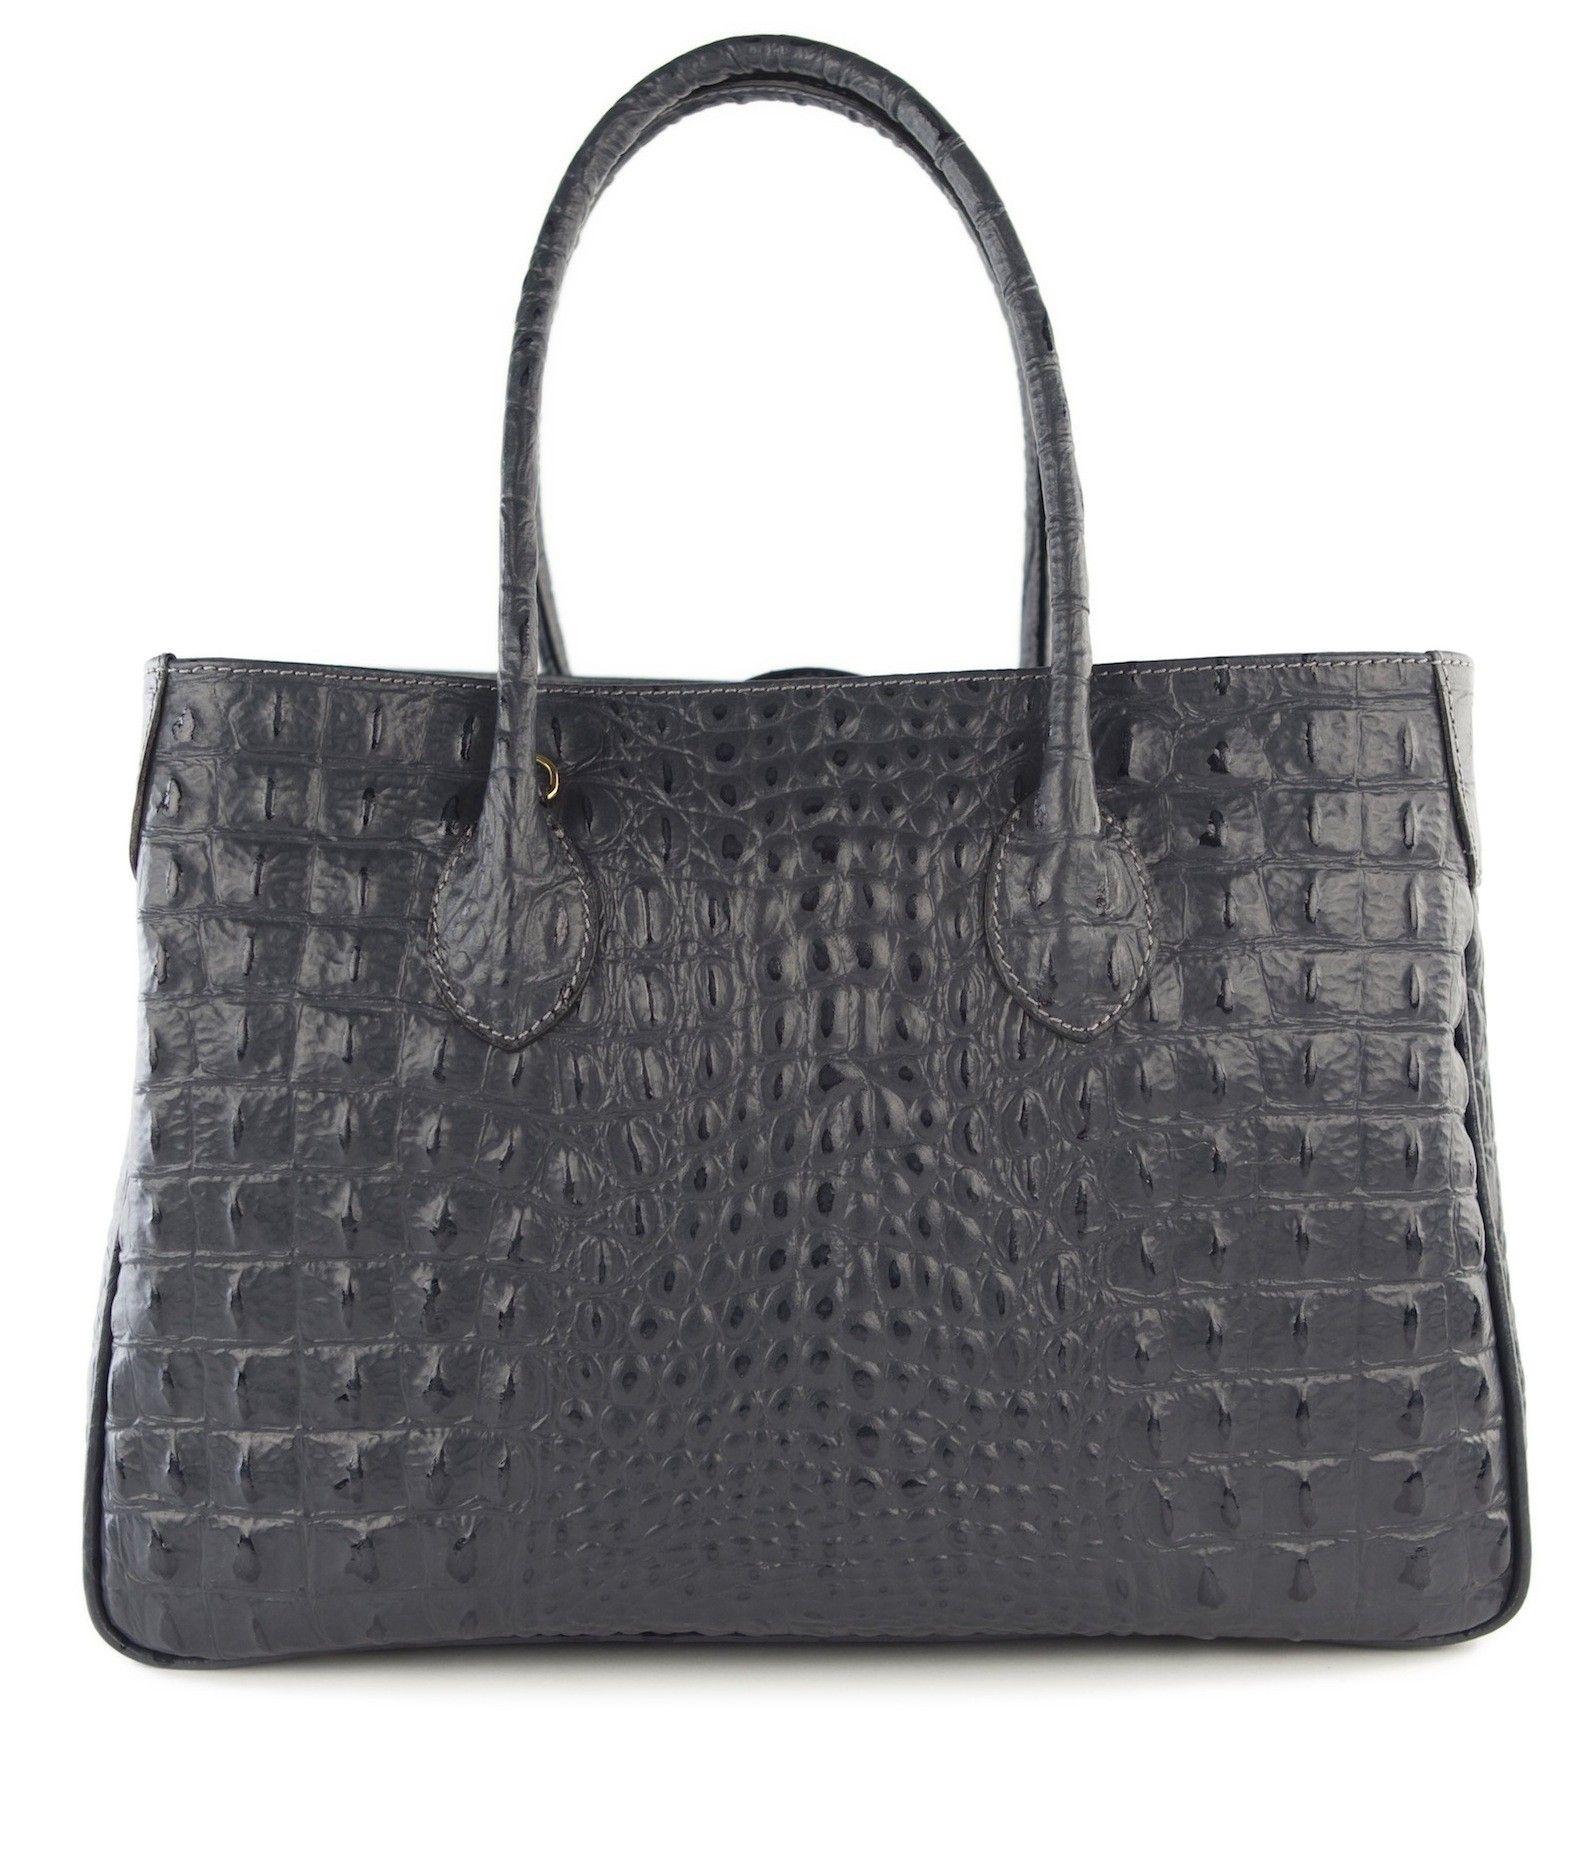 Courage B Tote Handbags Work